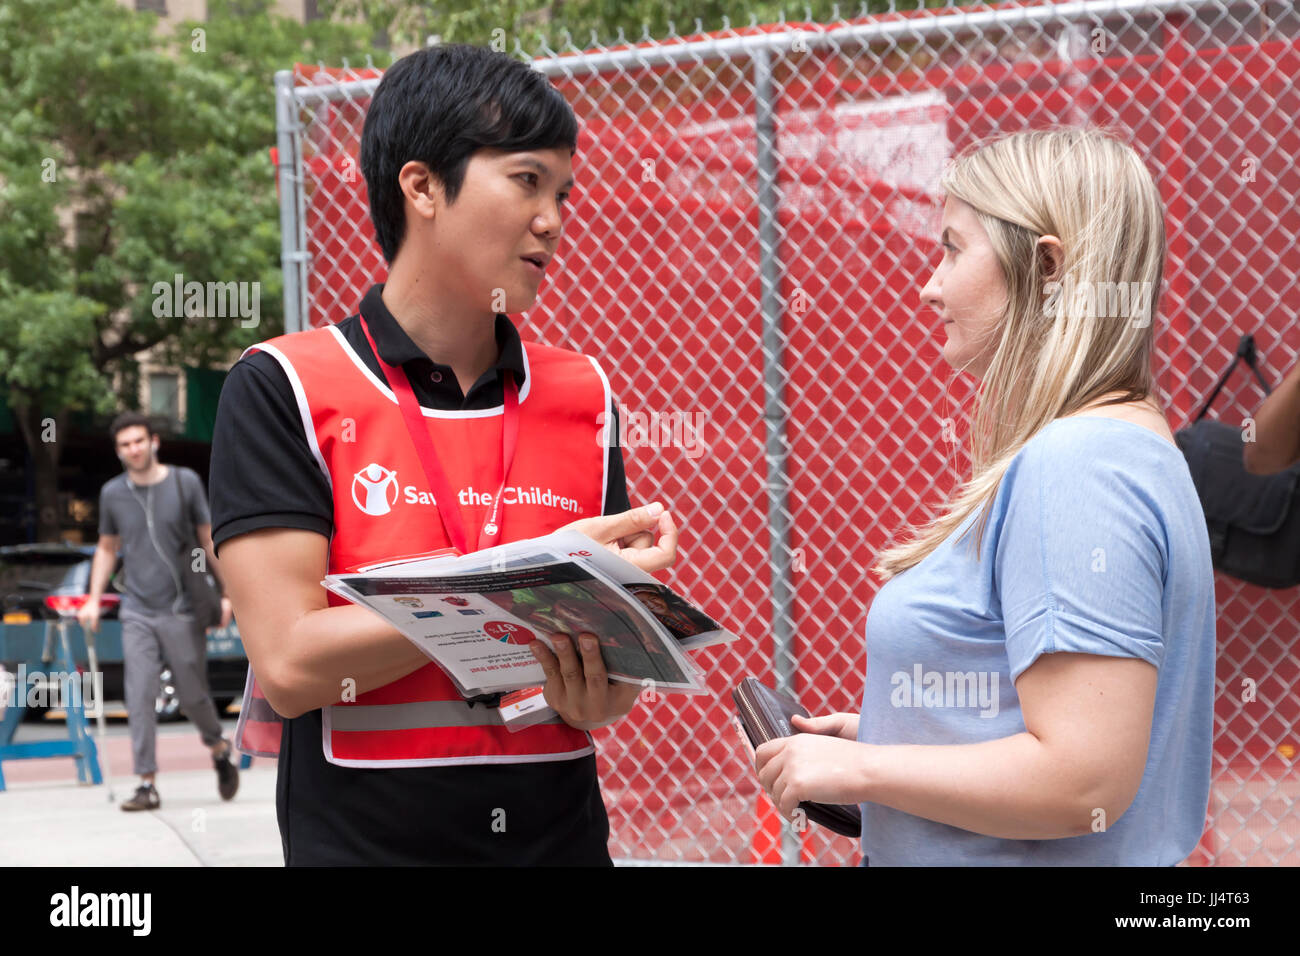 A canvasser for 'Save The Children' organization talks to a woman about recurring contributions (donations) - Stock Image